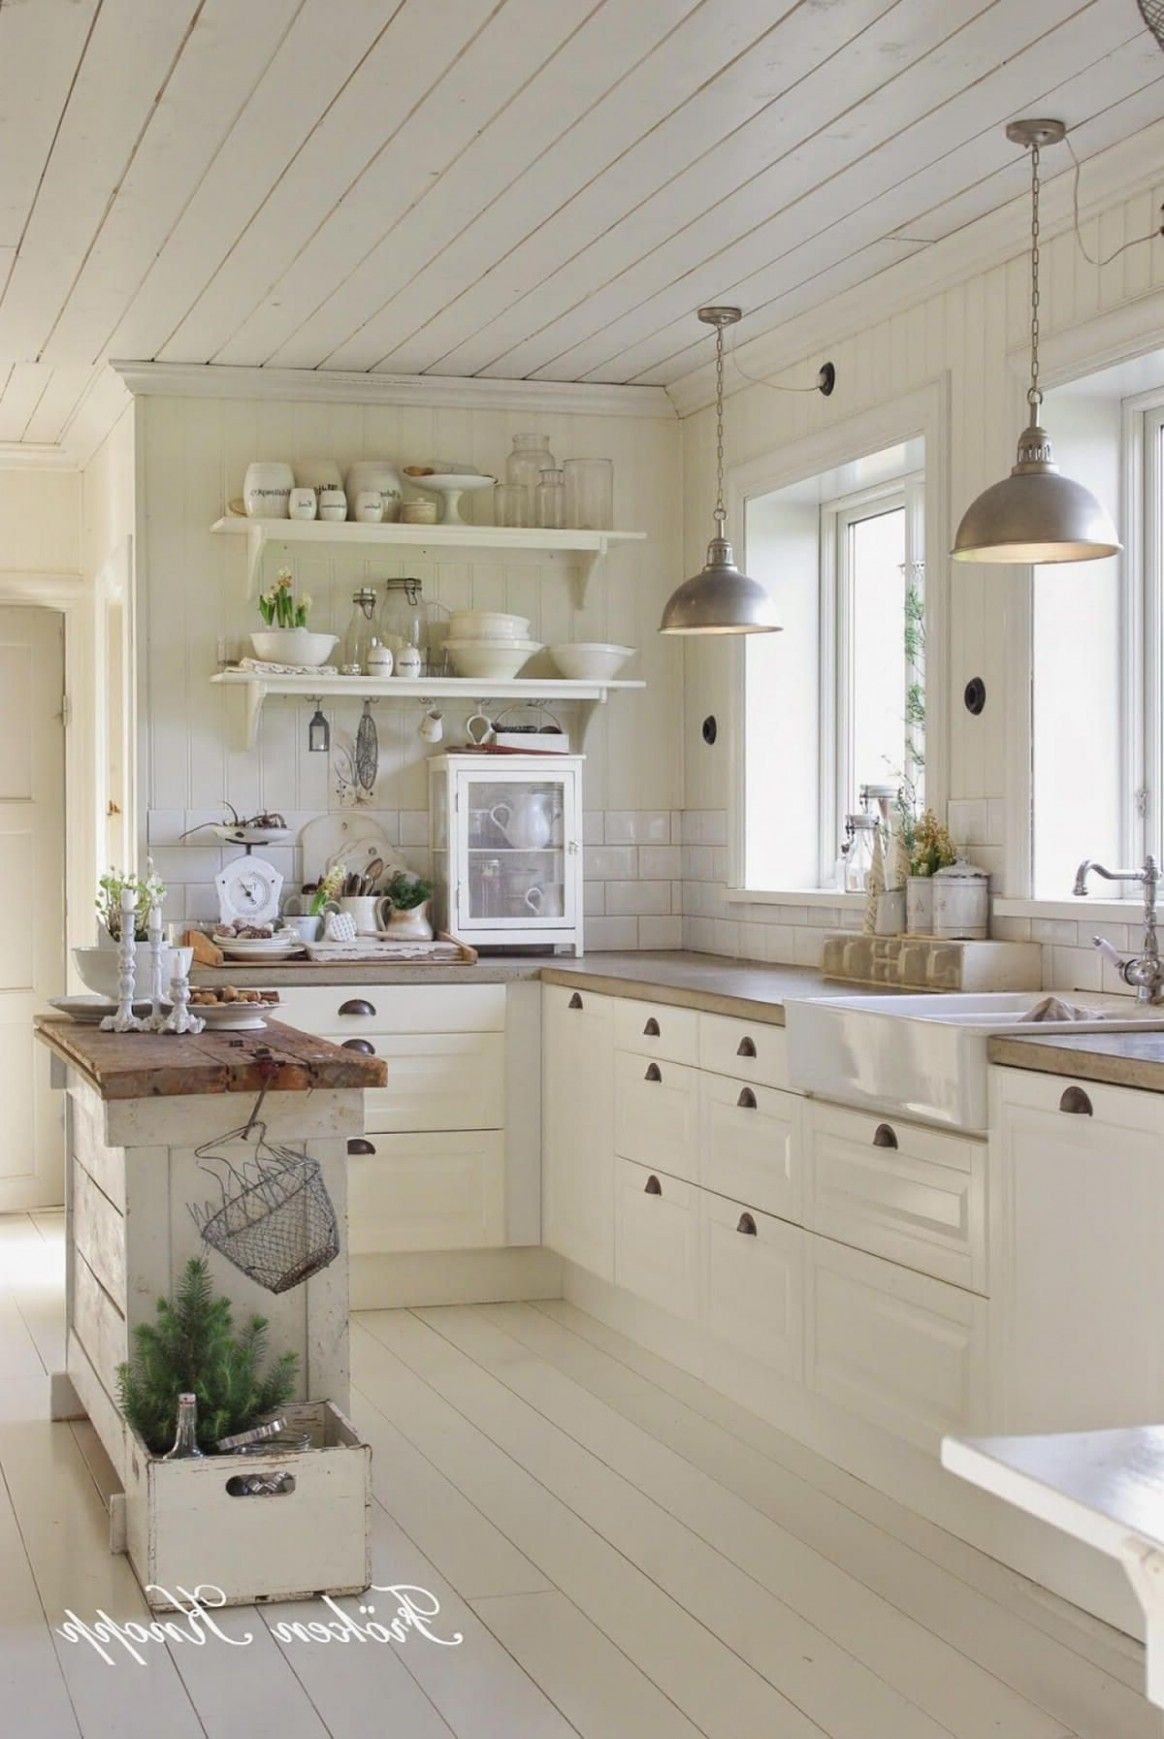 21 Charming French Country Decor Ideas With Timeless